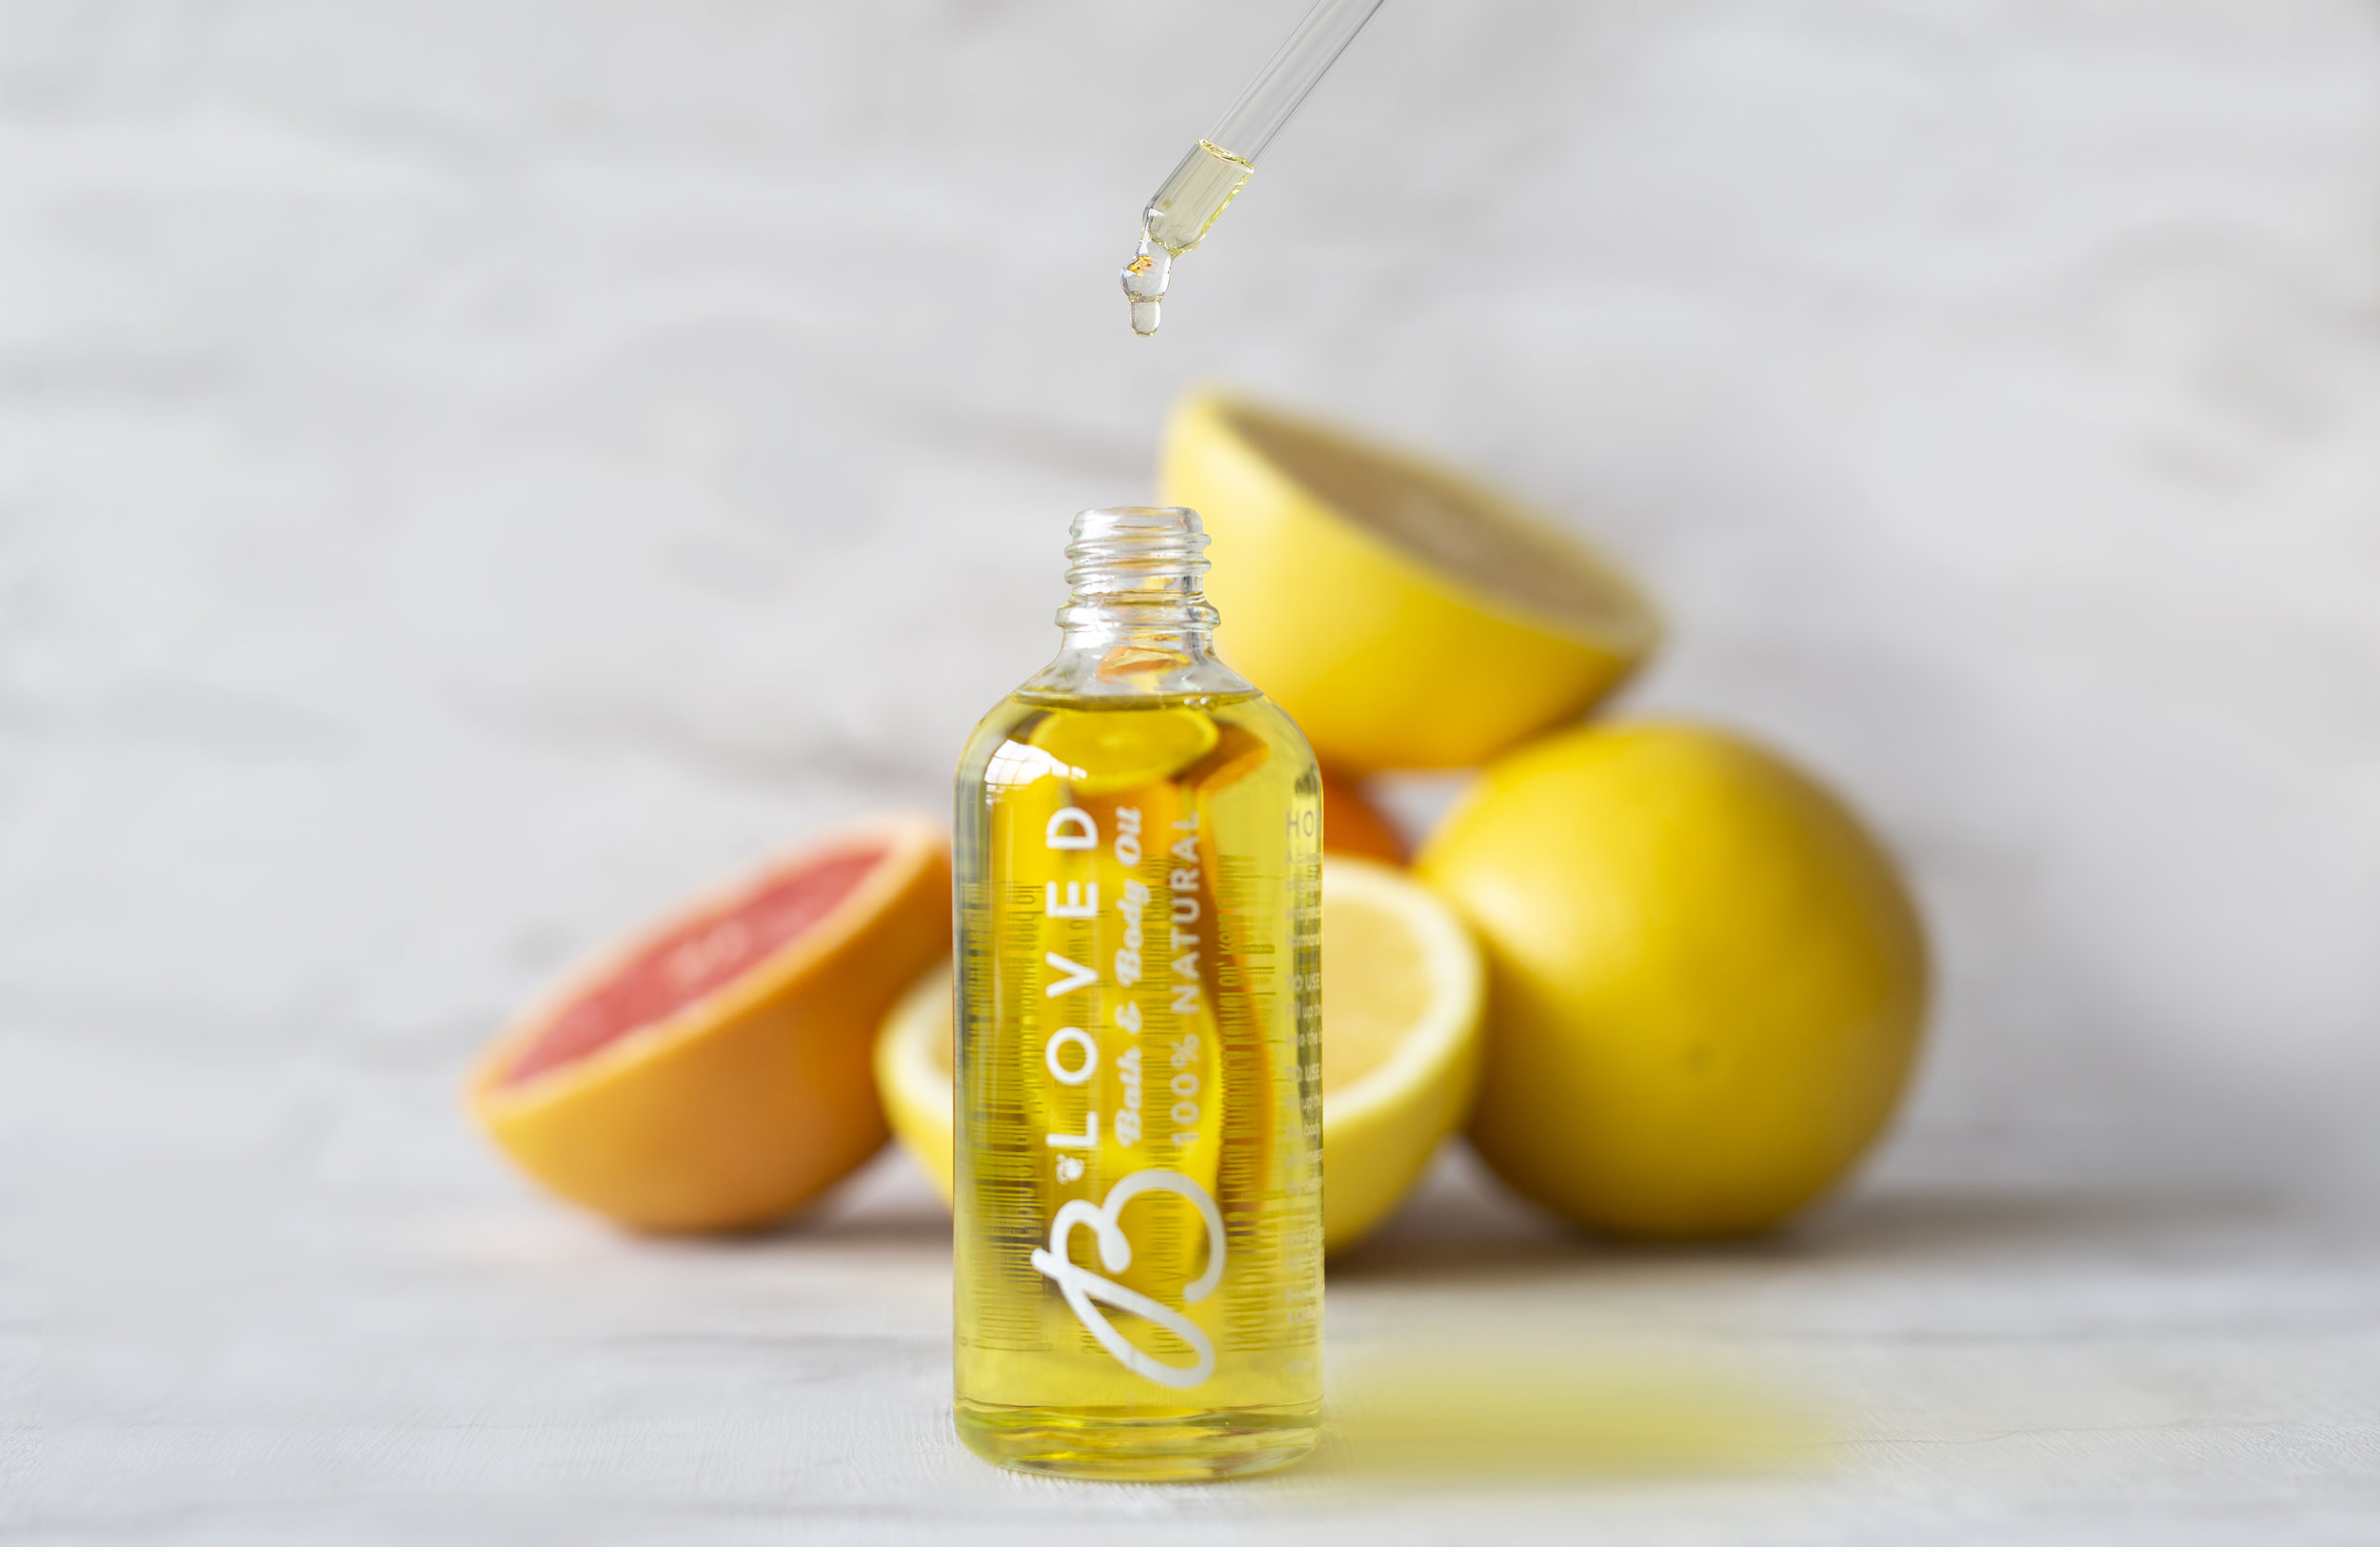 Our Hormonal bath/body oil is a soothing blend to release hormonal tension